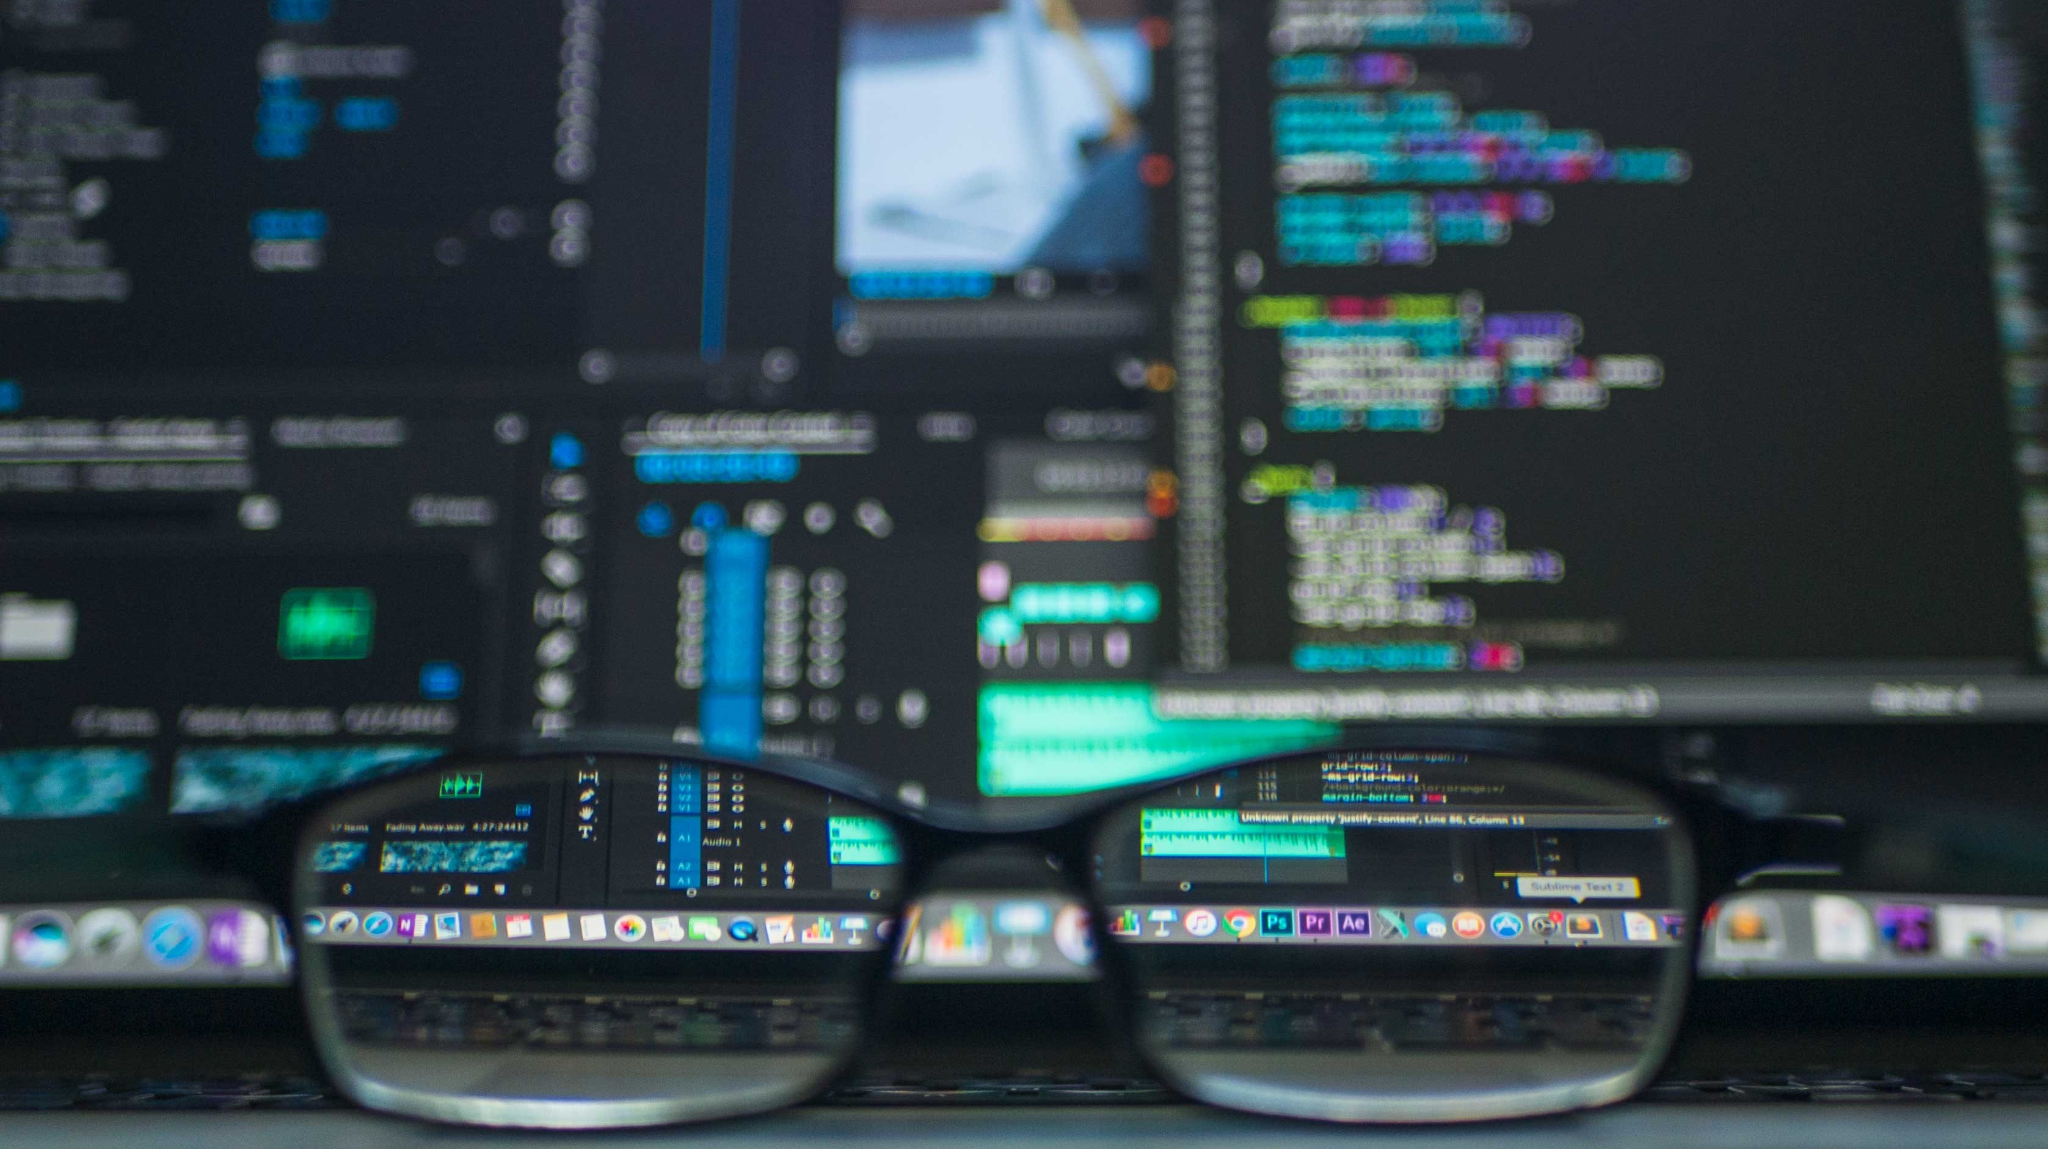 What Are Brute Force Attacks And How Can You Protect Your Organization Against Them - Expert Insights